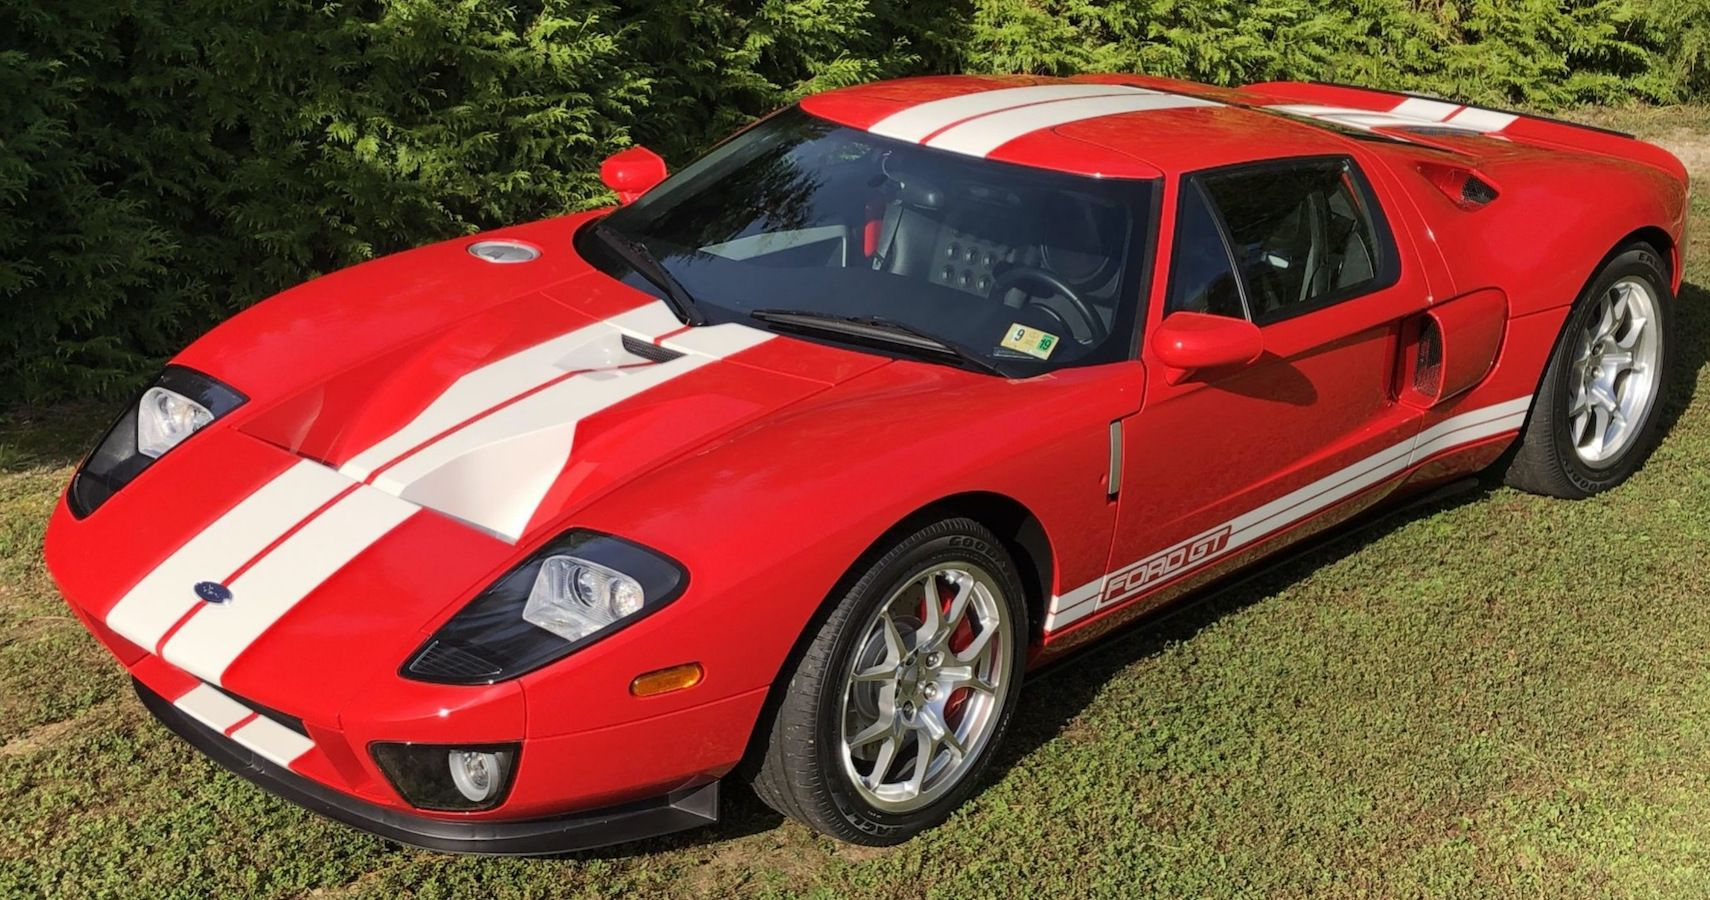 Bring A Trailer Find: Red 2005 Ford GT With Only 1100 Miles